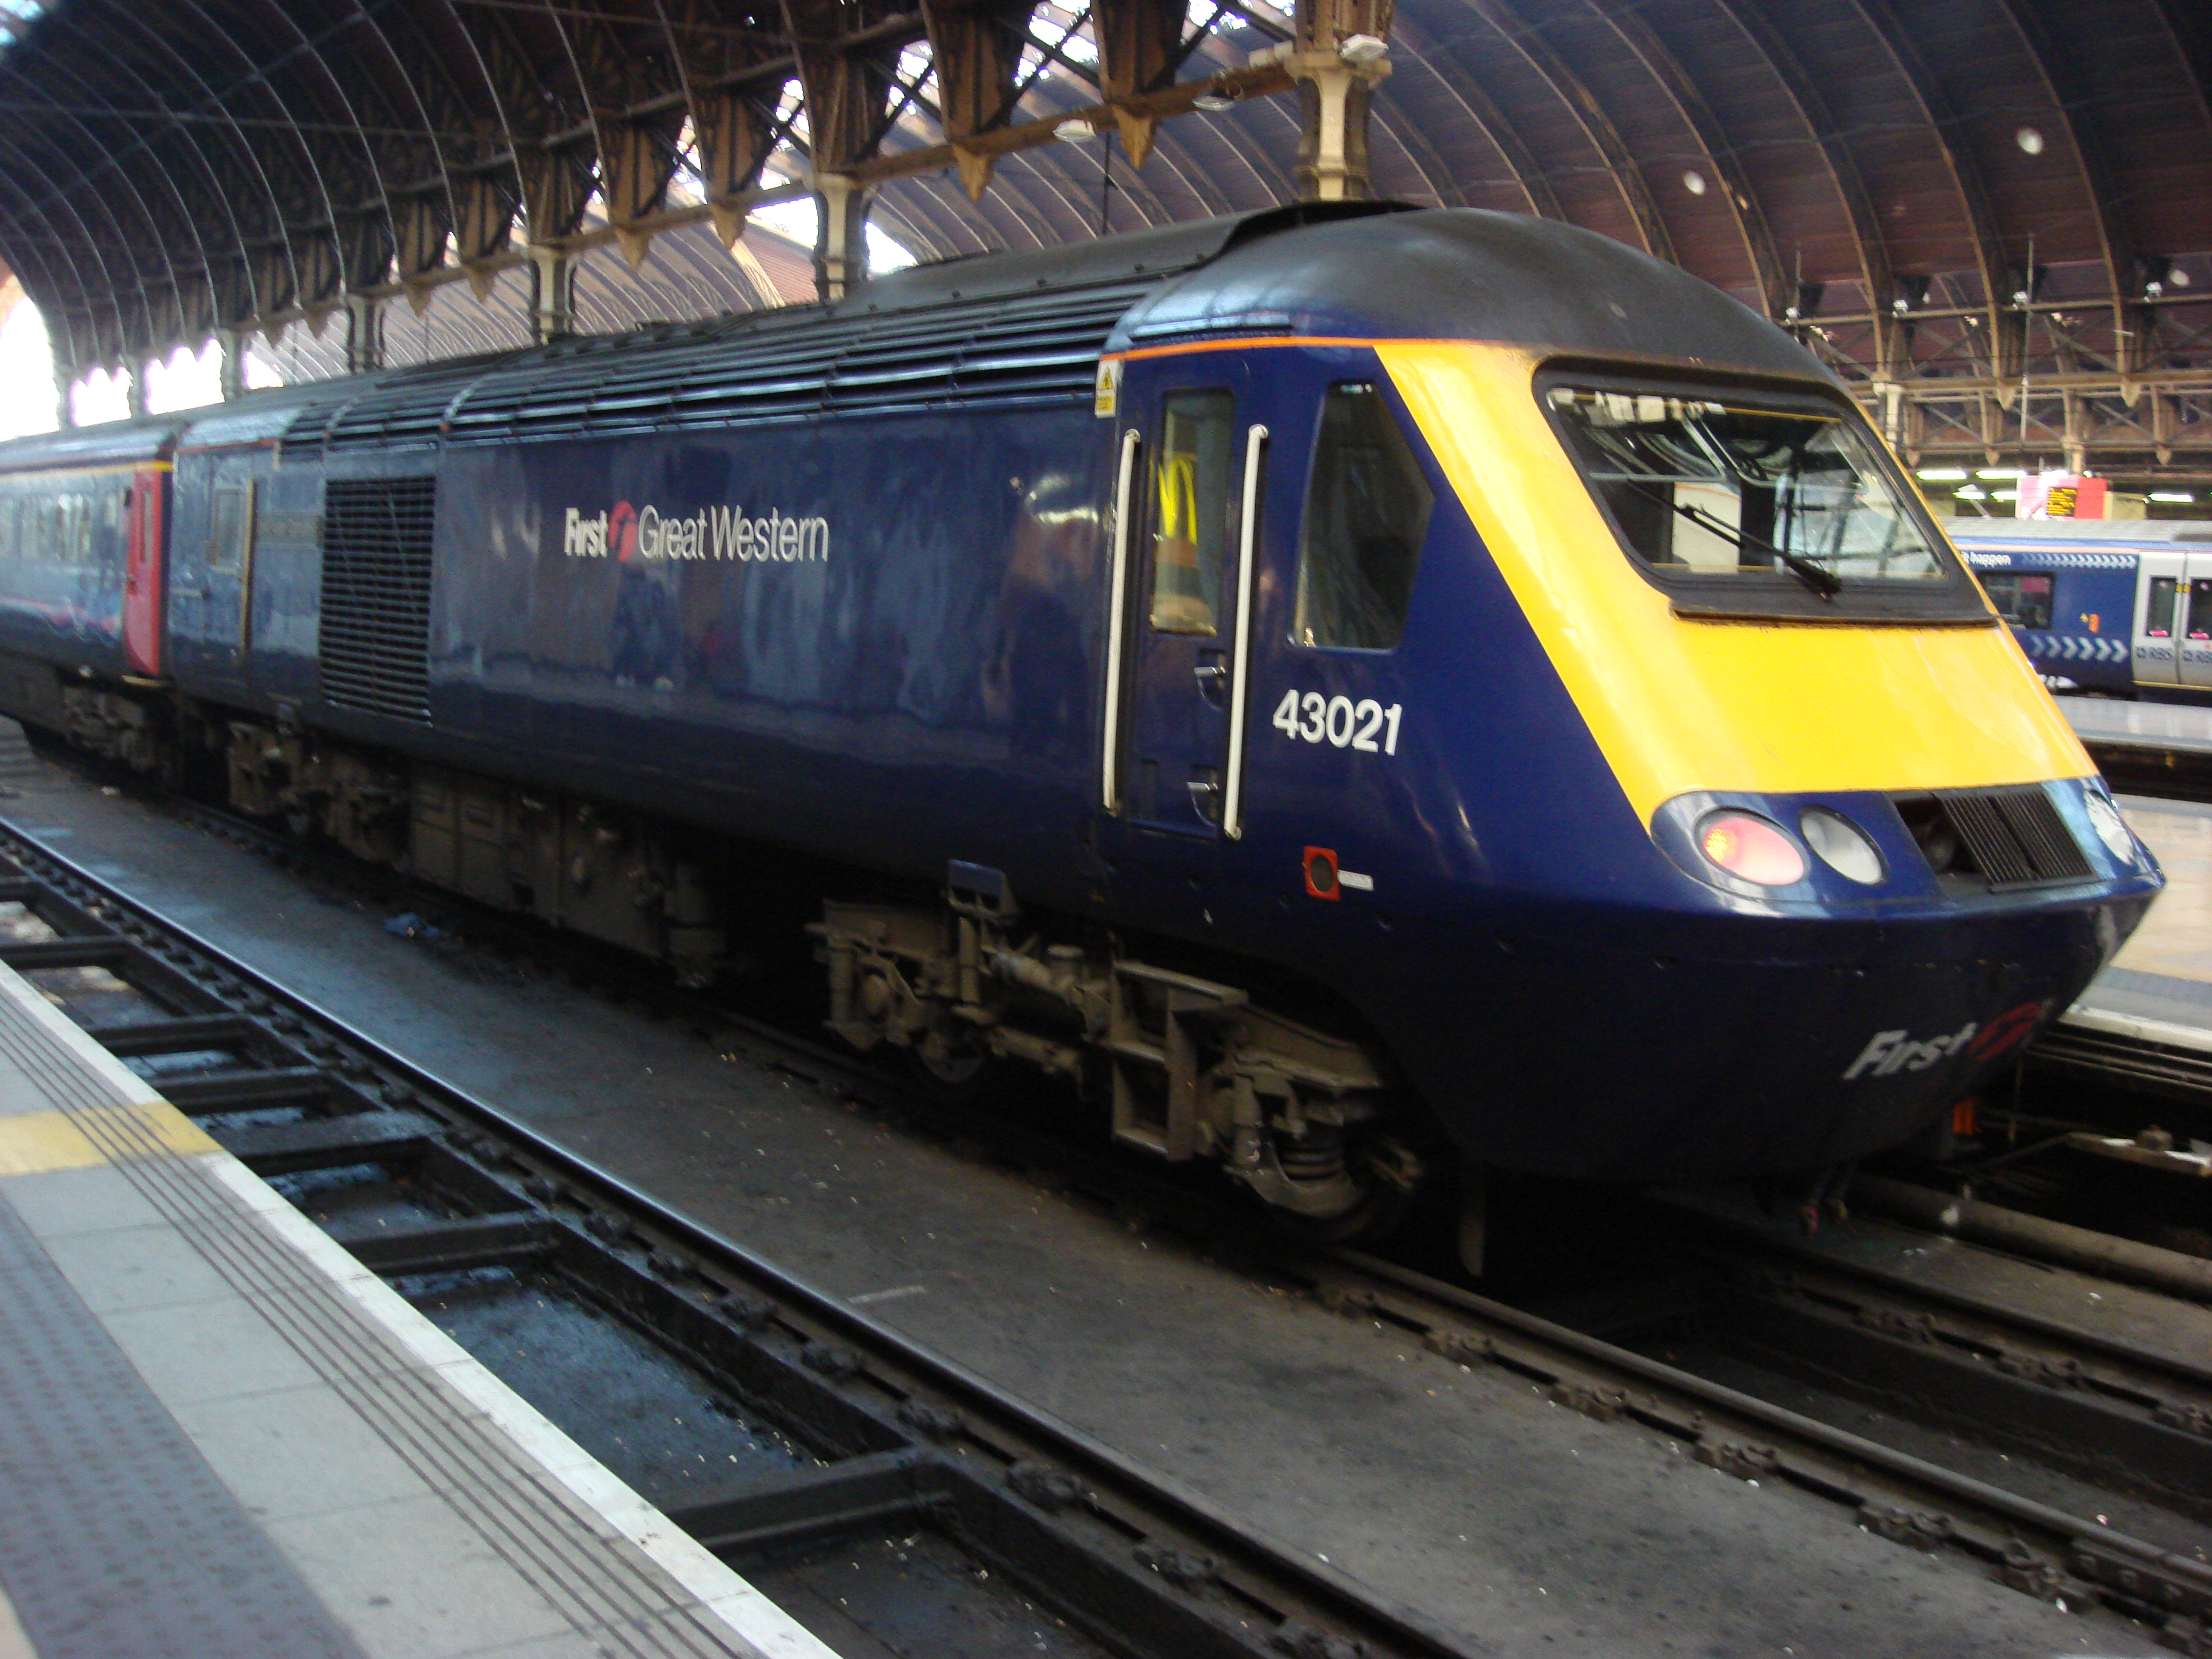 http://upload.wikimedia.org/wikipedia/commons/7/72/43021_at_Paddington_A.jpg